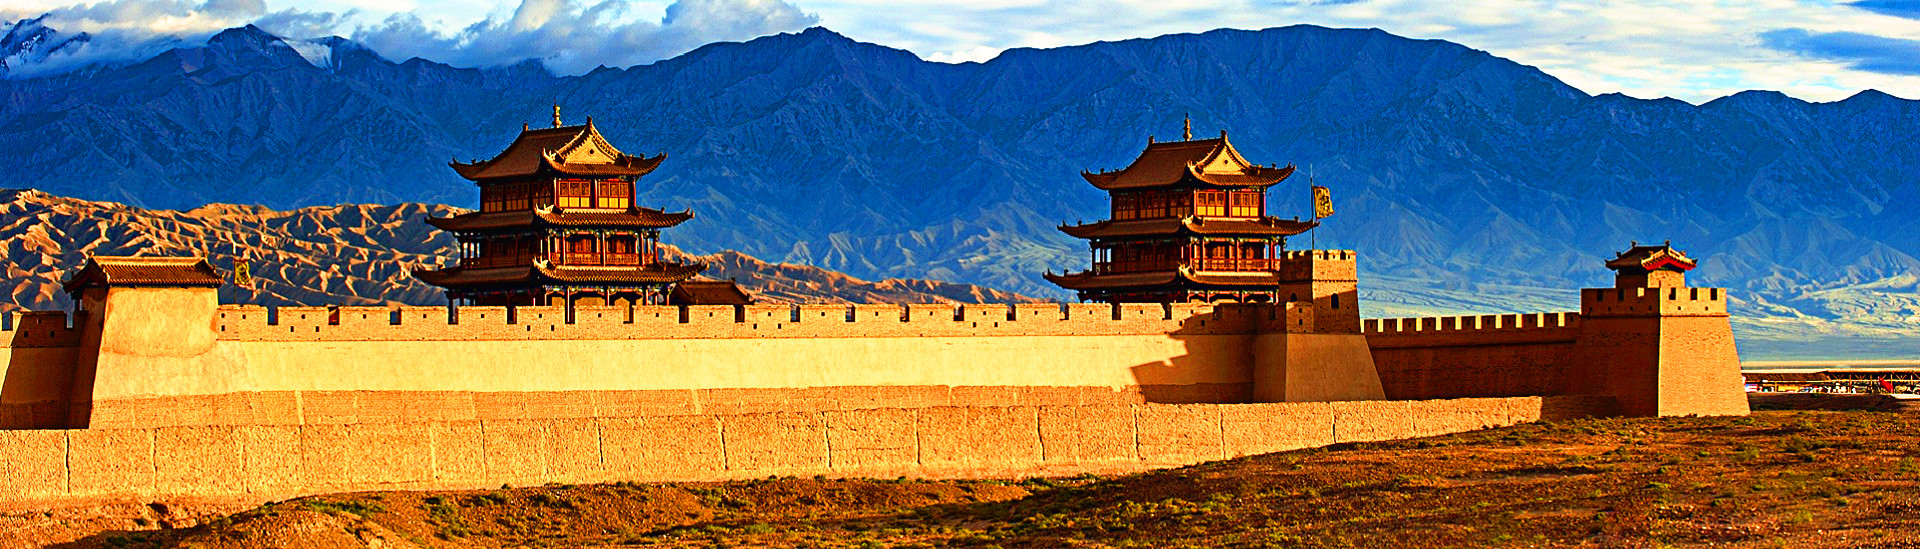 Silk Road Group Tours